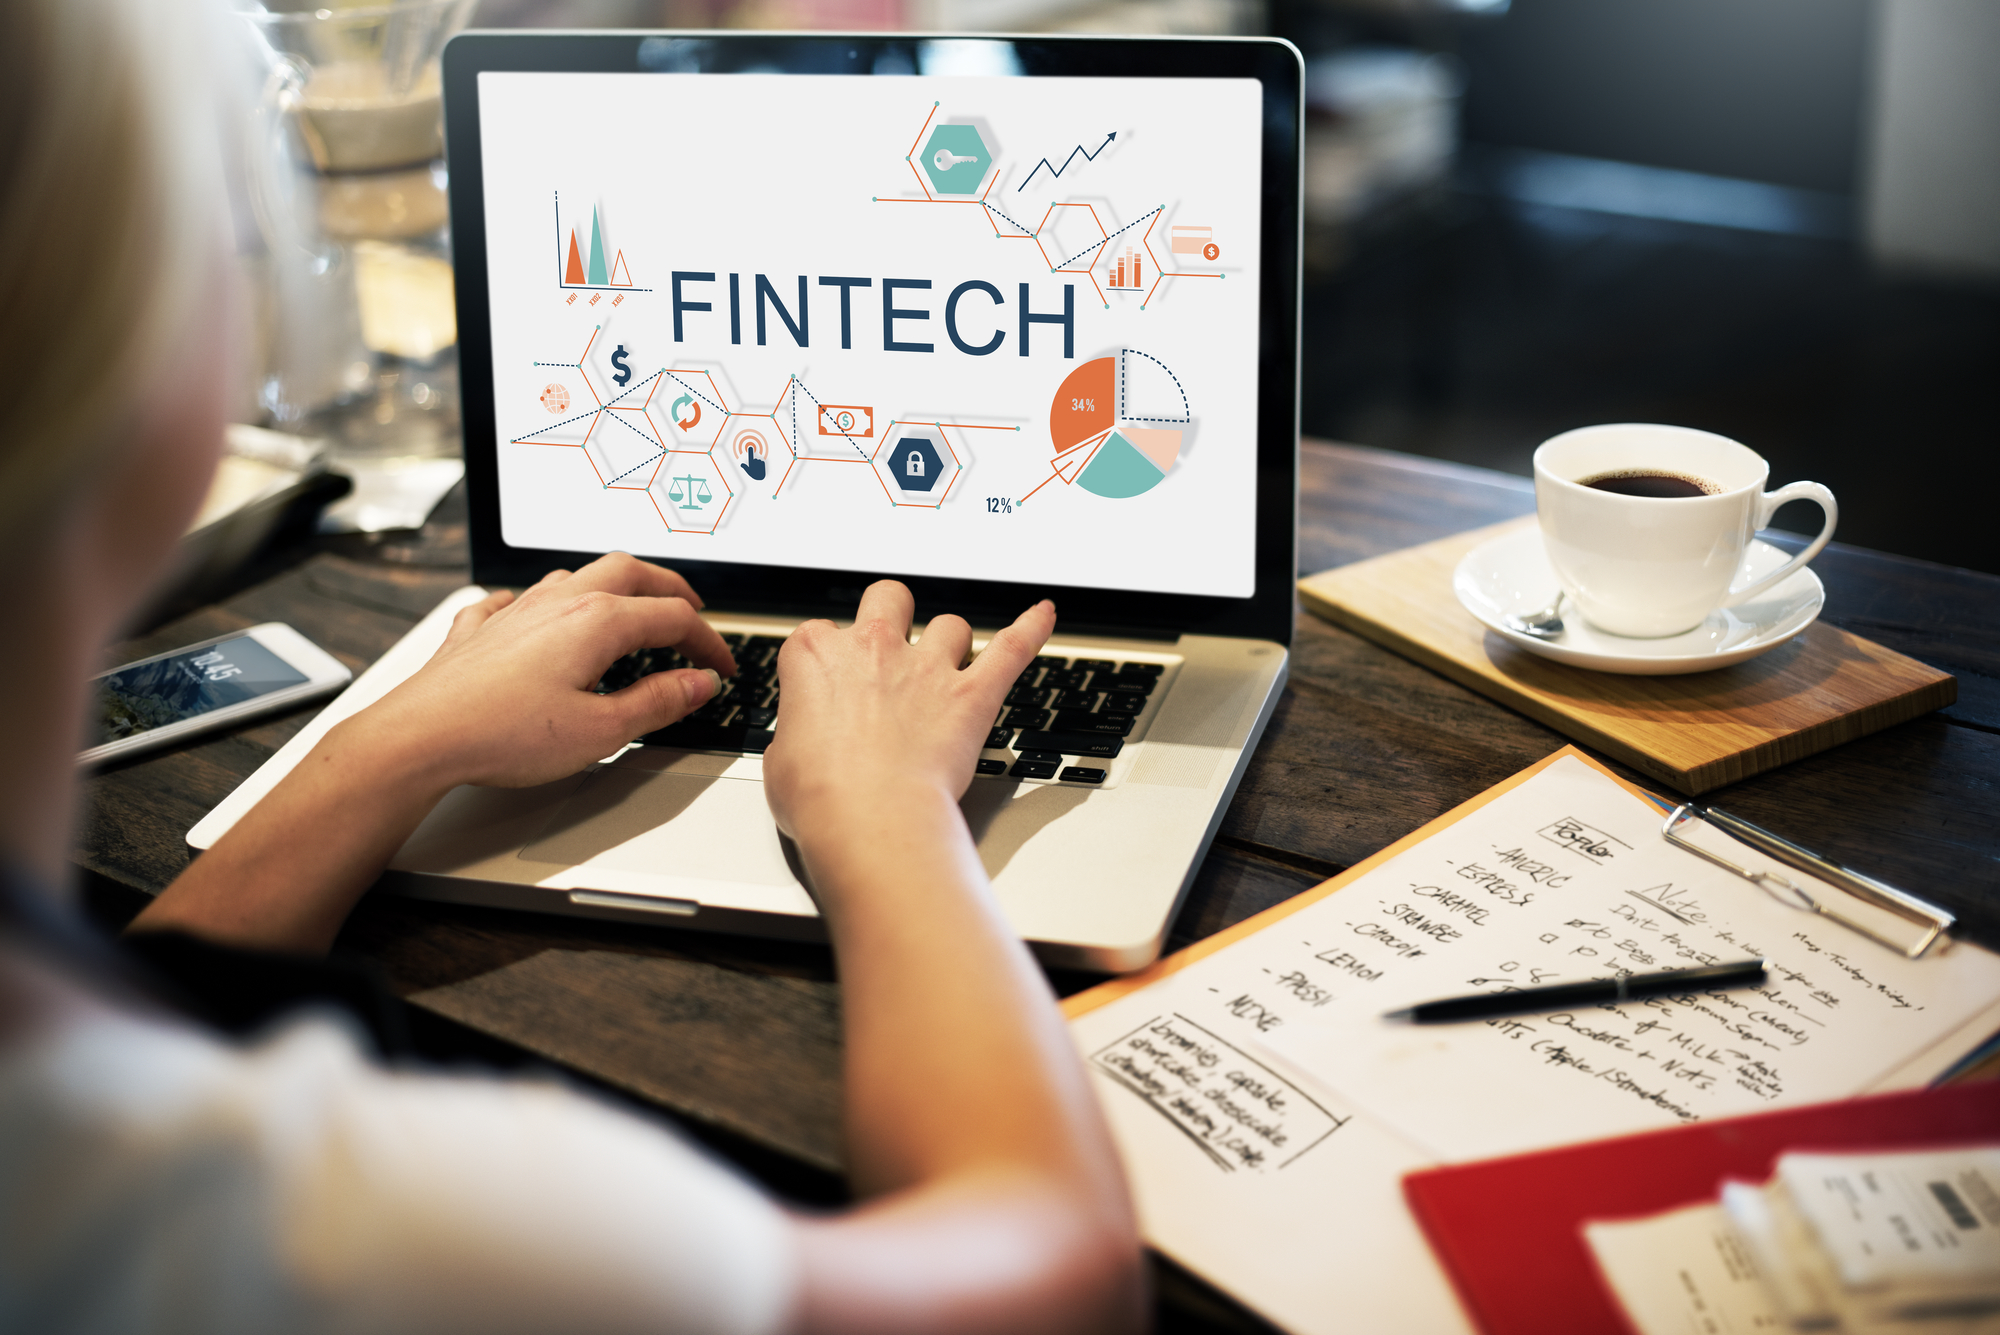 Fintech Startups: Why They Struggle To Raise Funding